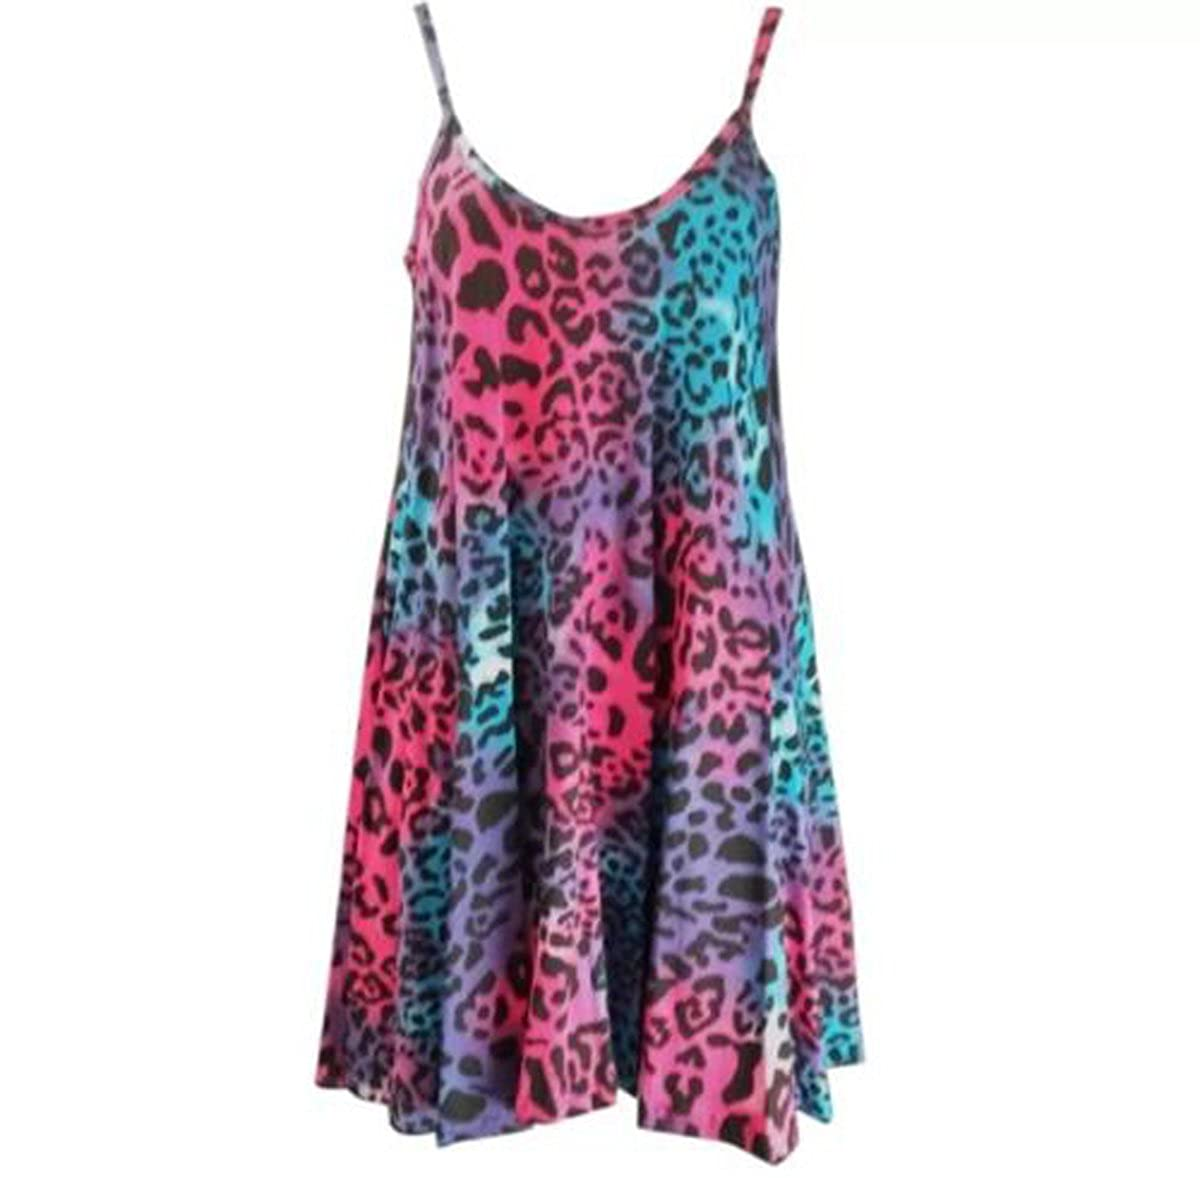 FashionMark Women's Leopard Print Camisole Flared Dress